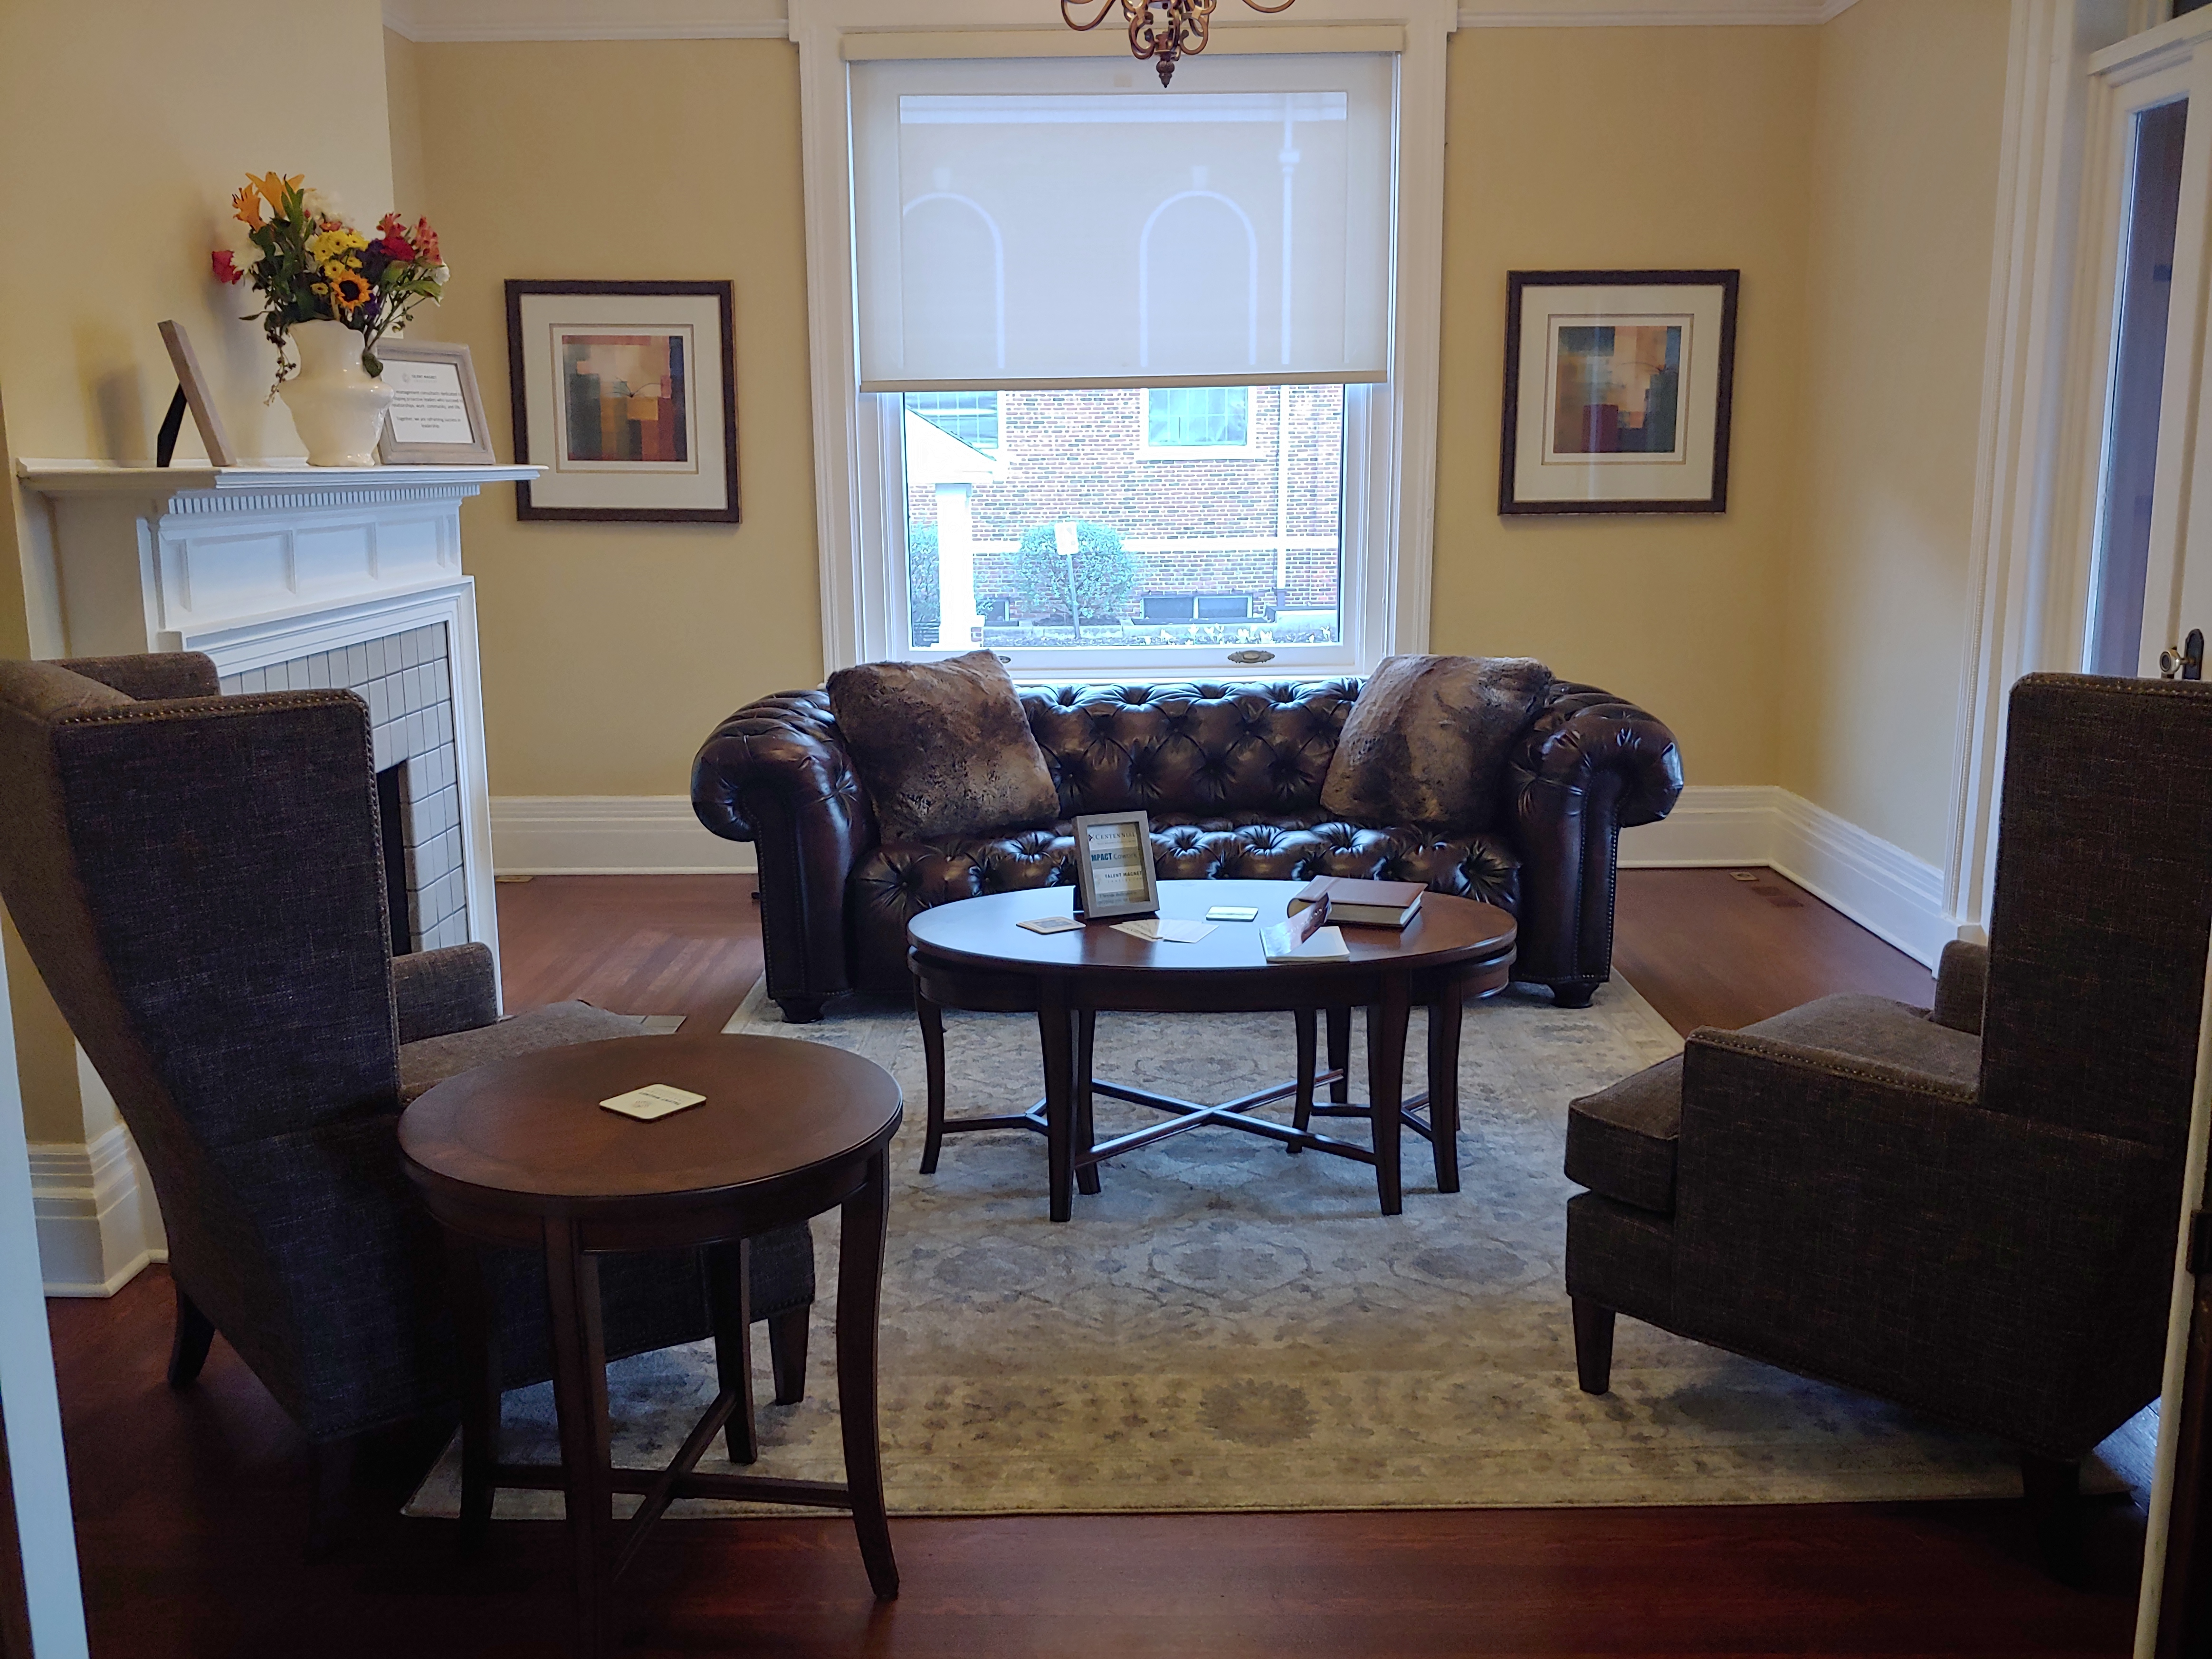 Lounge at Impact Coworking